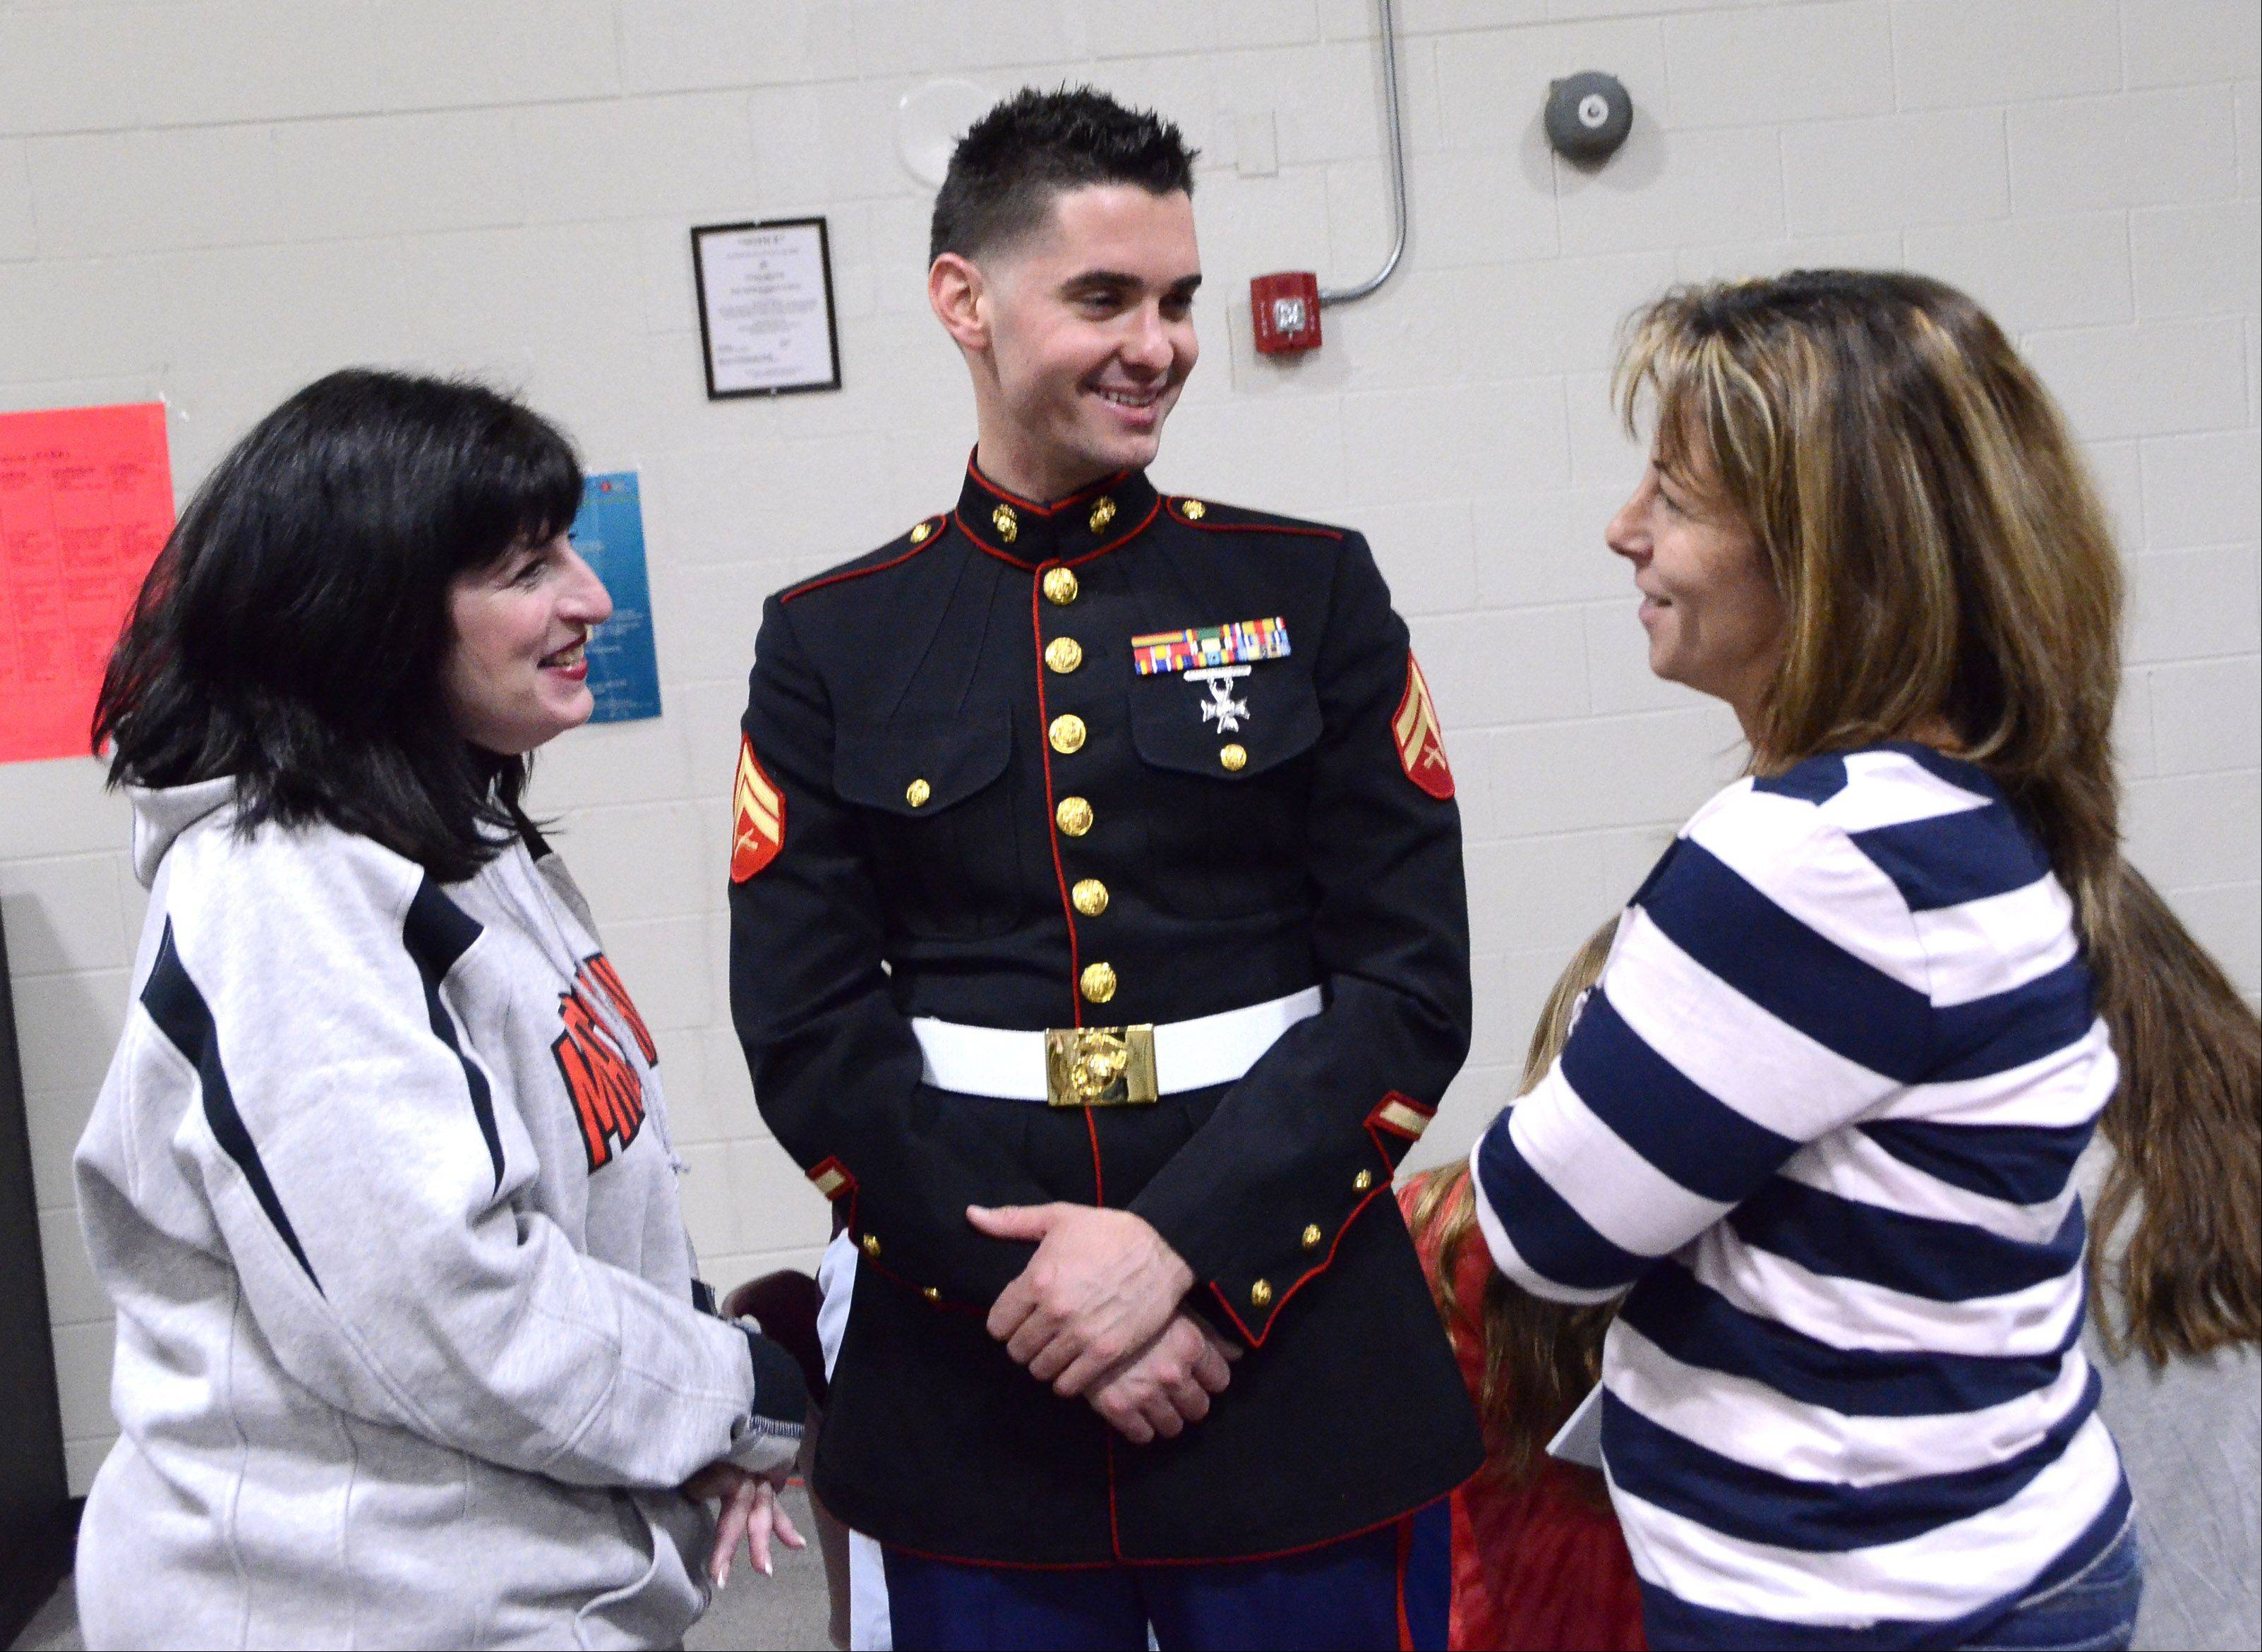 USMC Corporal Patrick Hood of Chicago, visits with his former teachers Jodi Hernandez, left, and Athena Lalaras at the Veterans Day breakfast and assembly Friday at MacArthur Middle School in Prospect Heights.